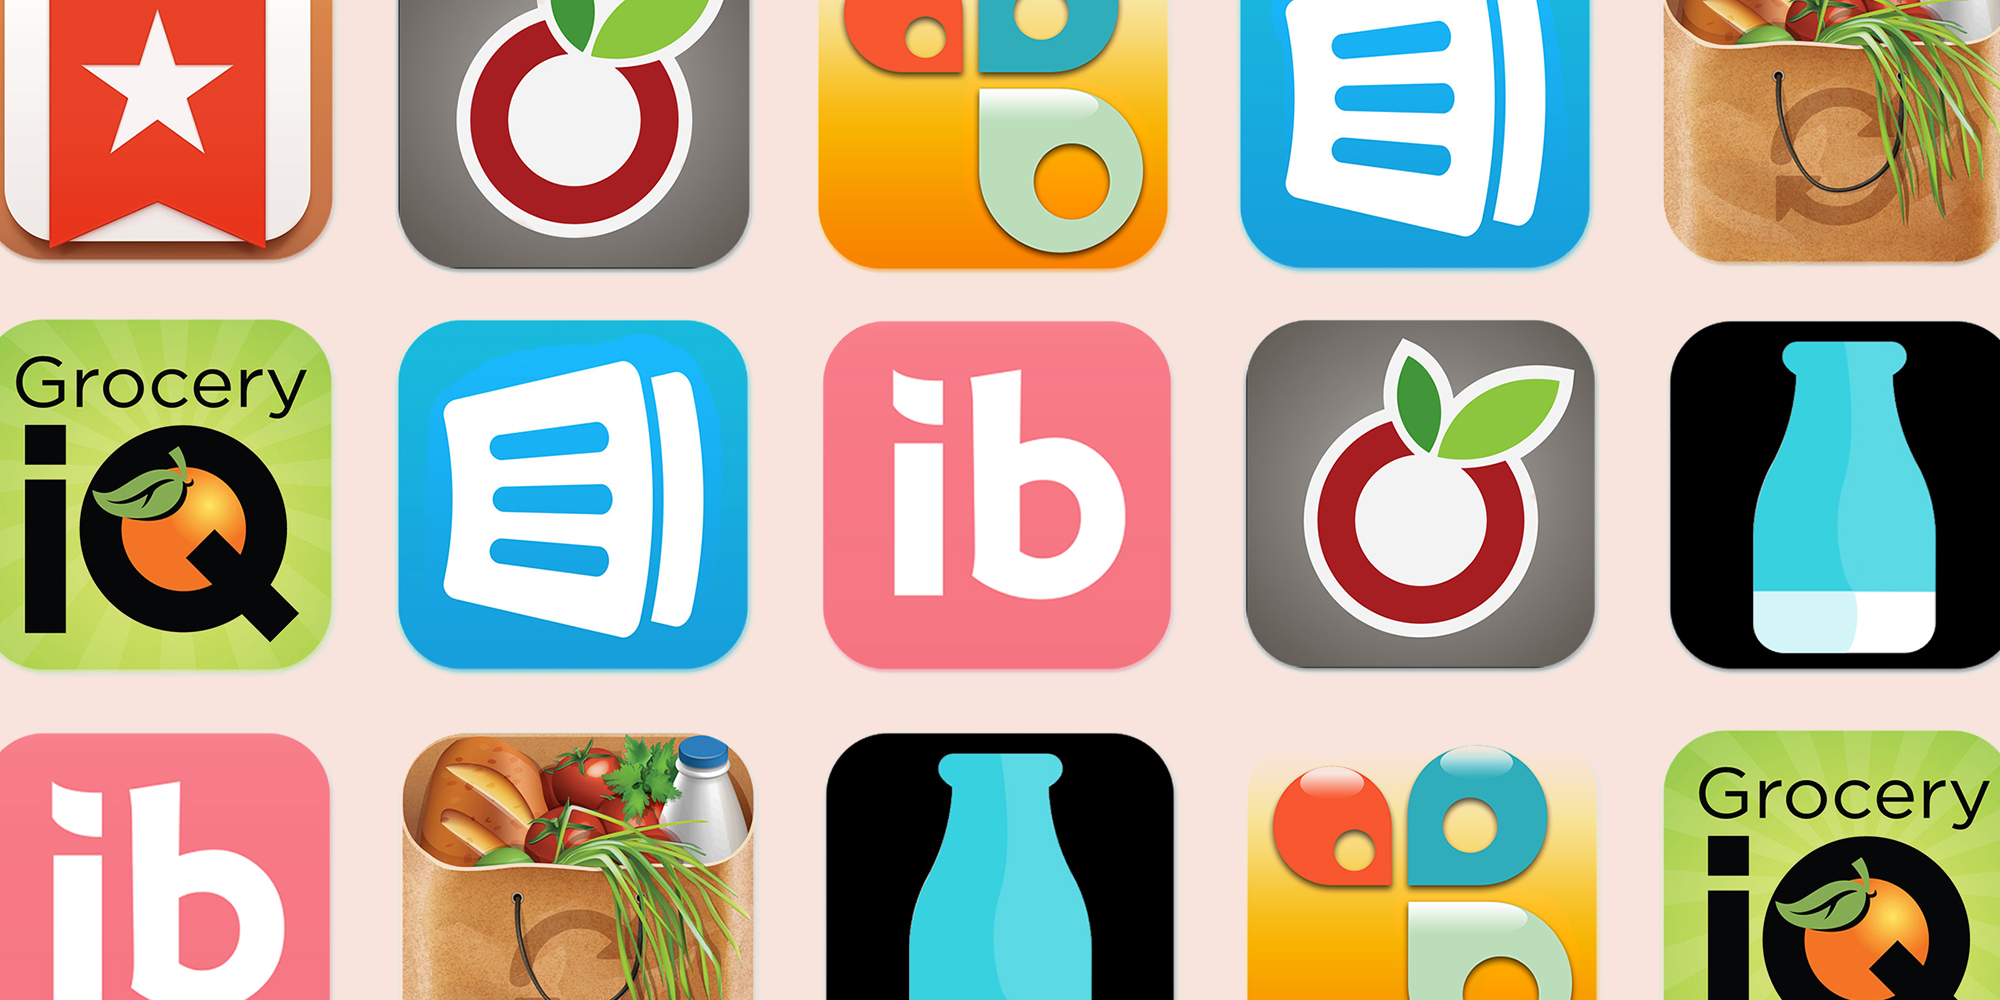 13 Best Grocery List Apps Of 2017 Helpful Shopping List